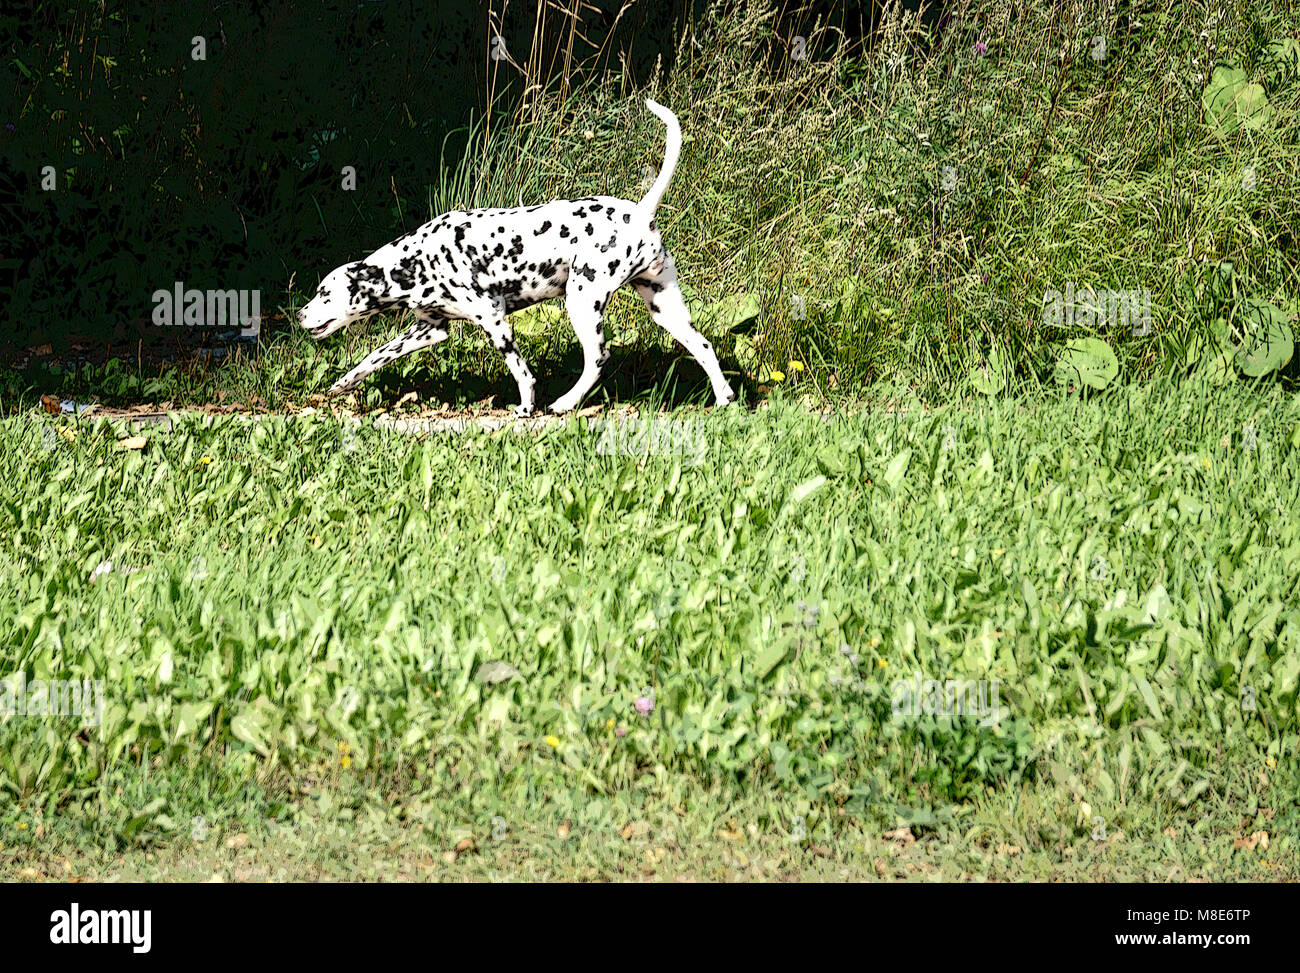 Dalmatian dog running - Stock Image